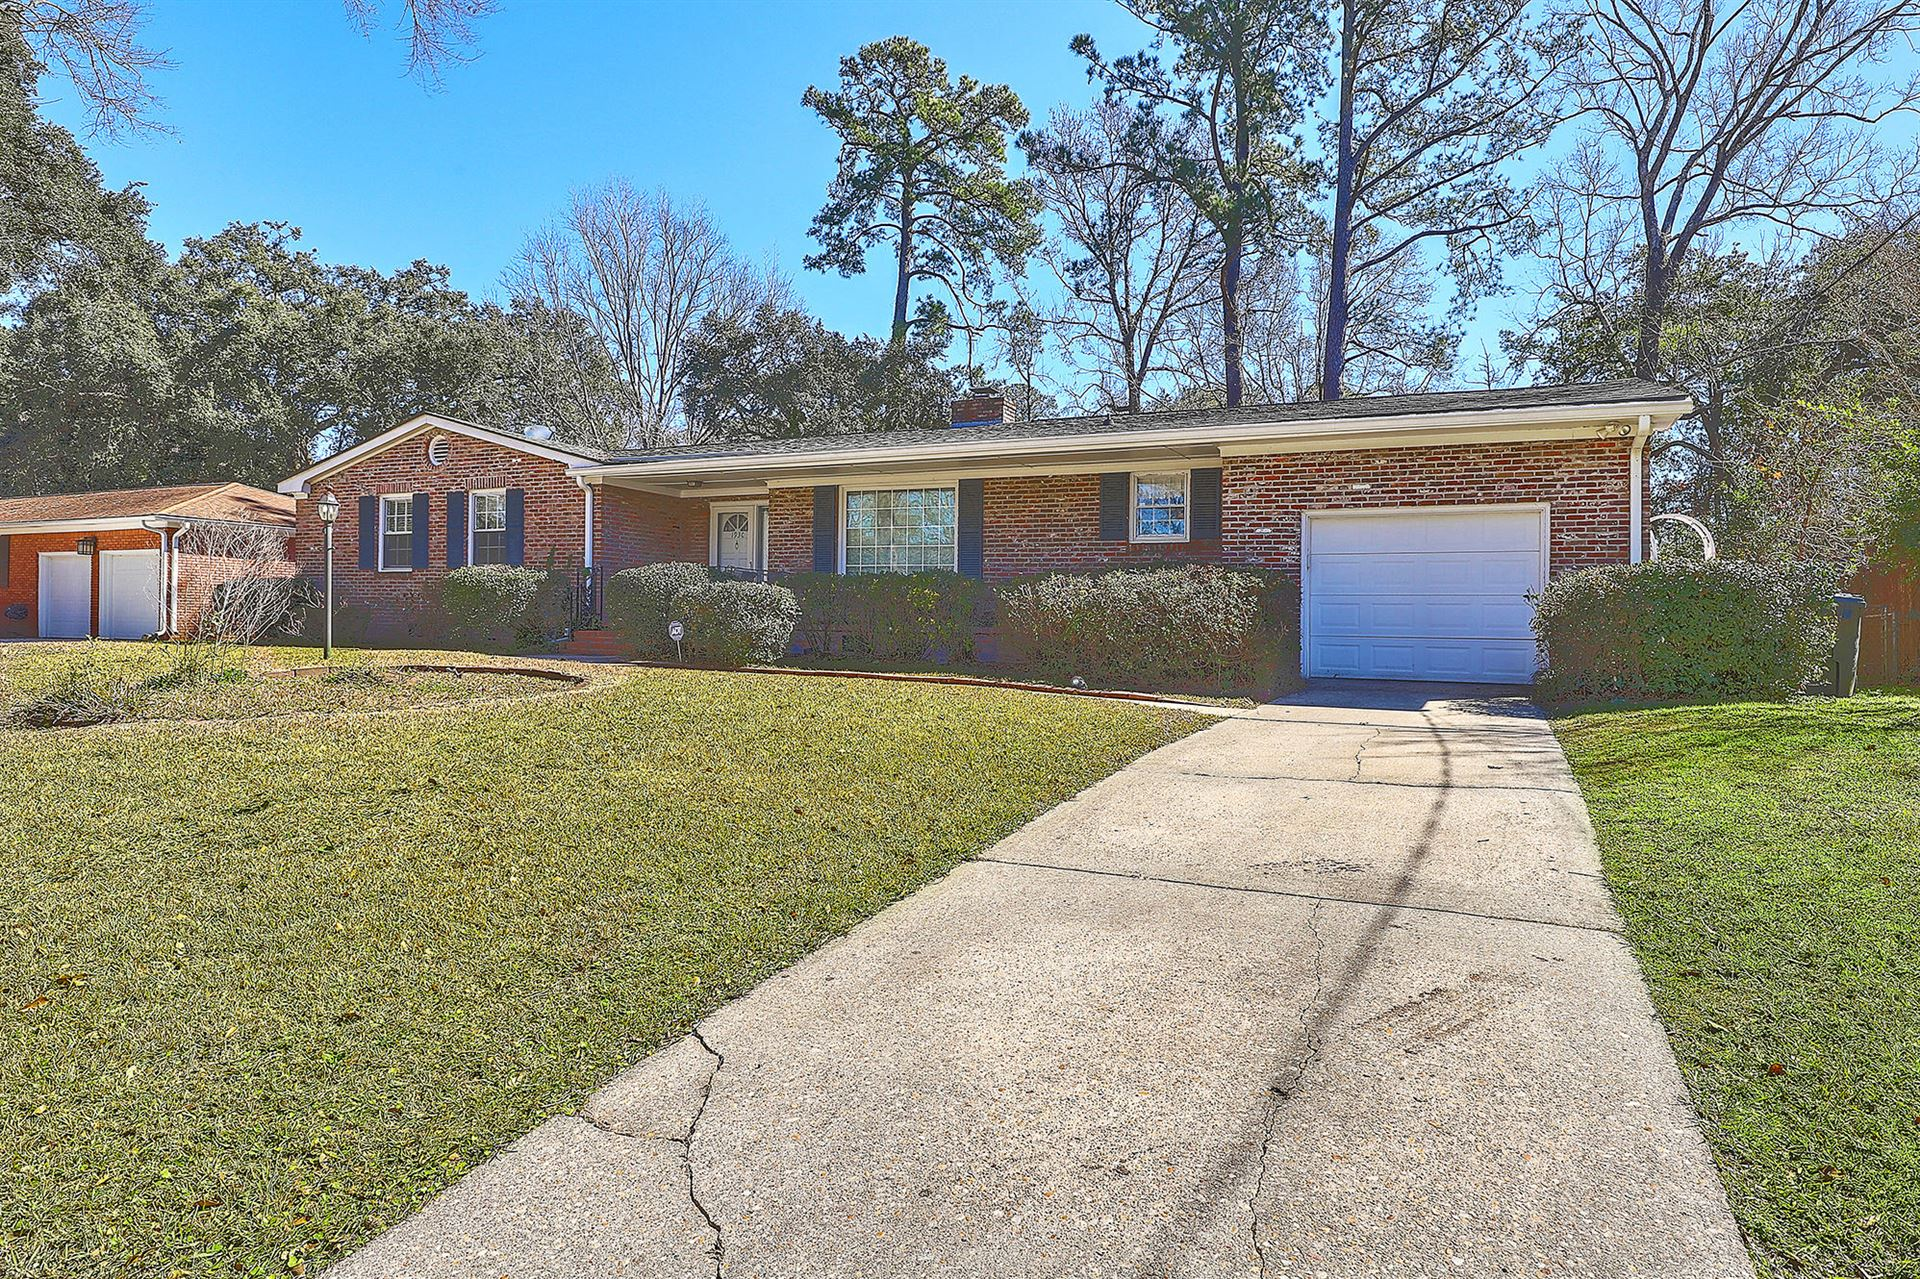 Photo of 1930 Westminster Road, Charleston, SC 29407 (MLS # 21004831)